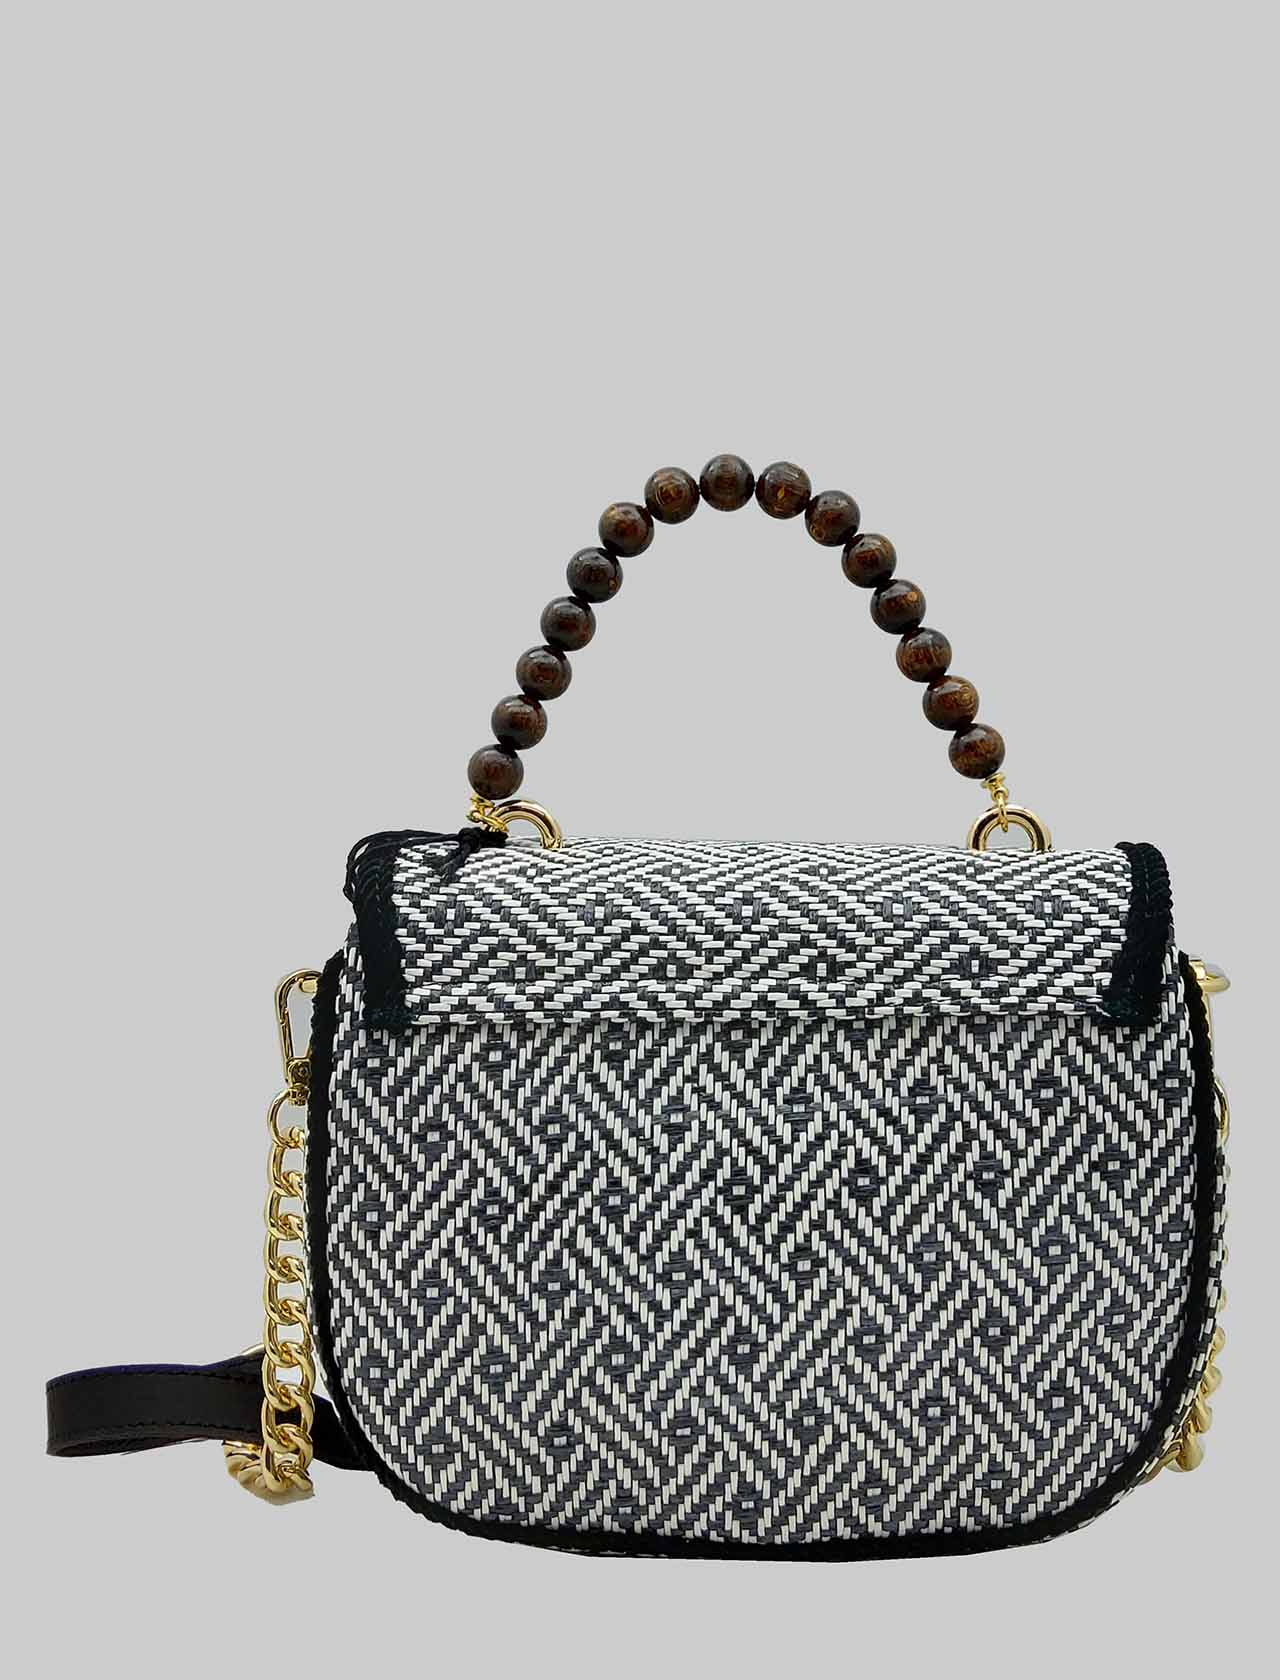 Women's Black and White Jacquard Shoulder Bag with Wooden Beaded Handle and Removable Suede Shoulder Strap and Gold Chain Via Mail Bag | Bags and backpacks | YUTAA04